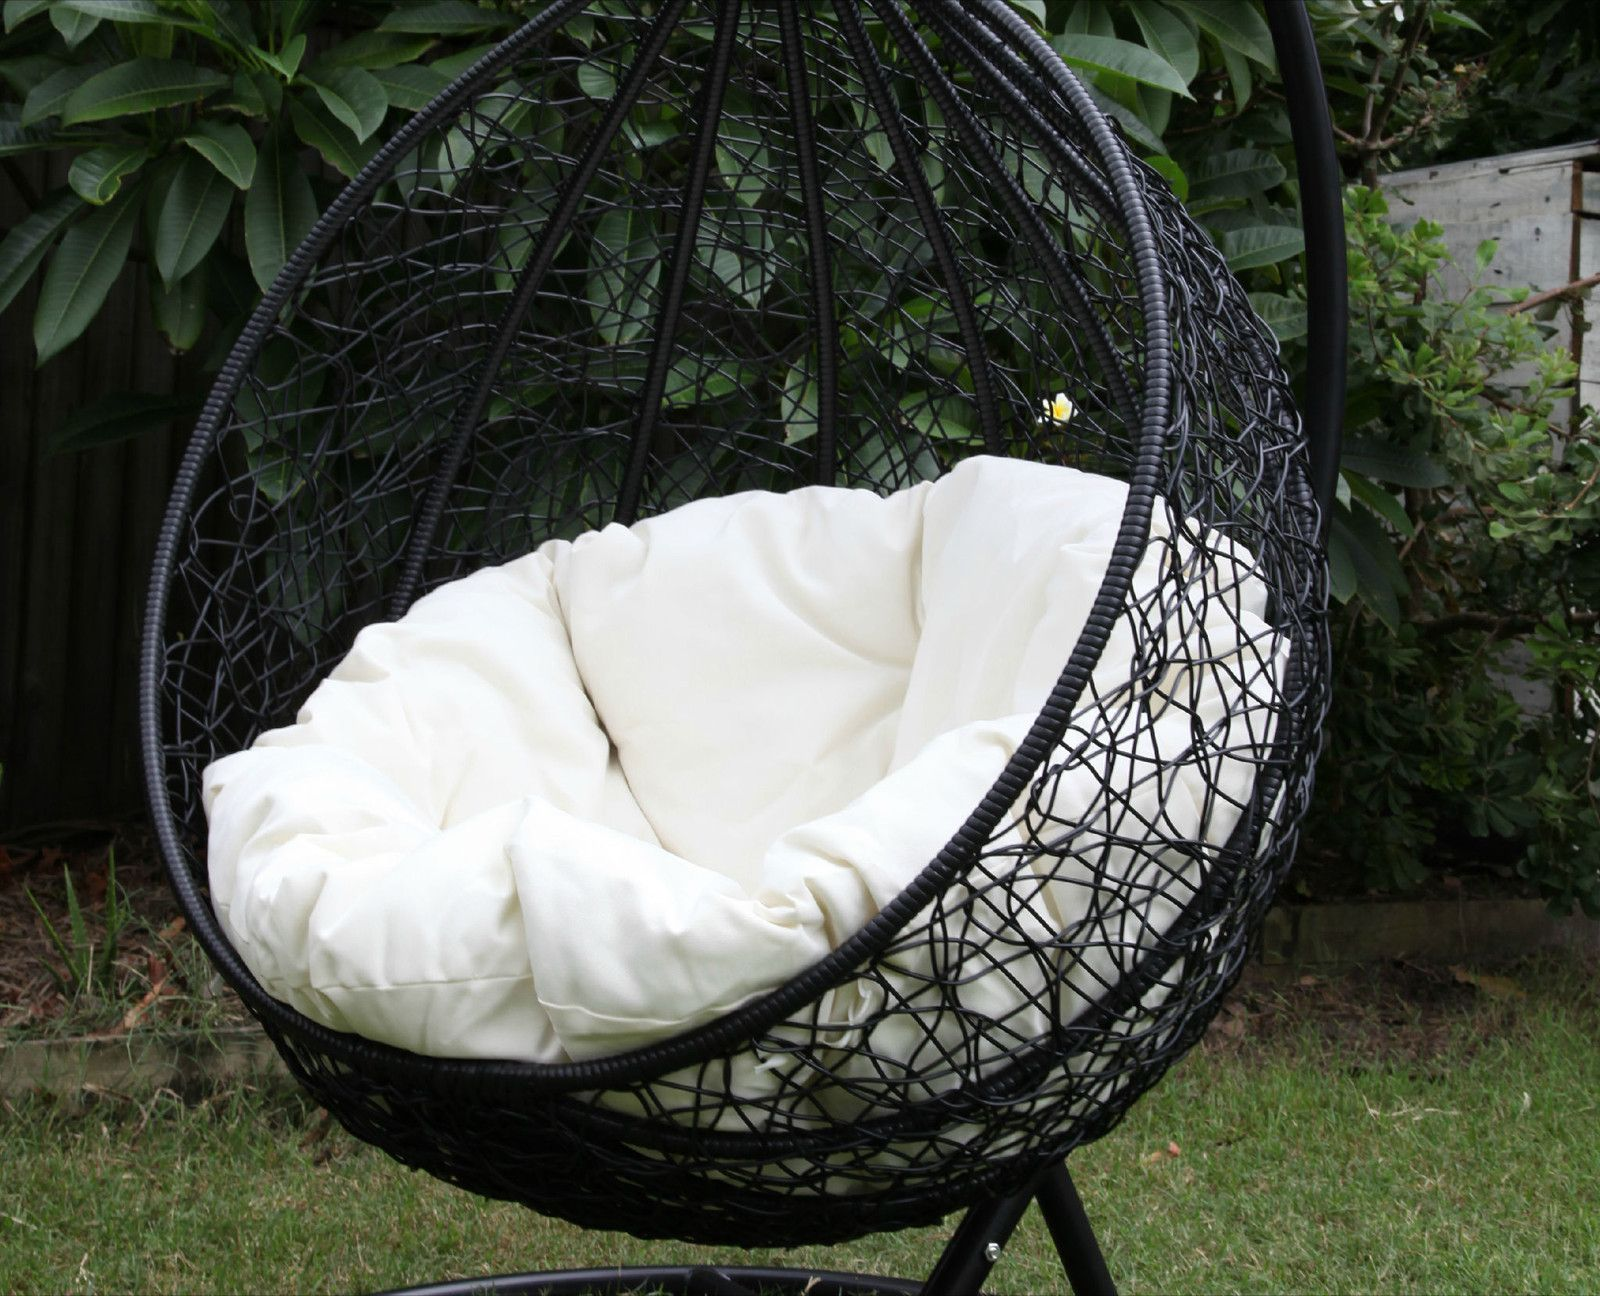 Wicker egg chair - Skycarte Black Hanging Egg Chair With White Plush Cushion And Stand A Striking Combination For